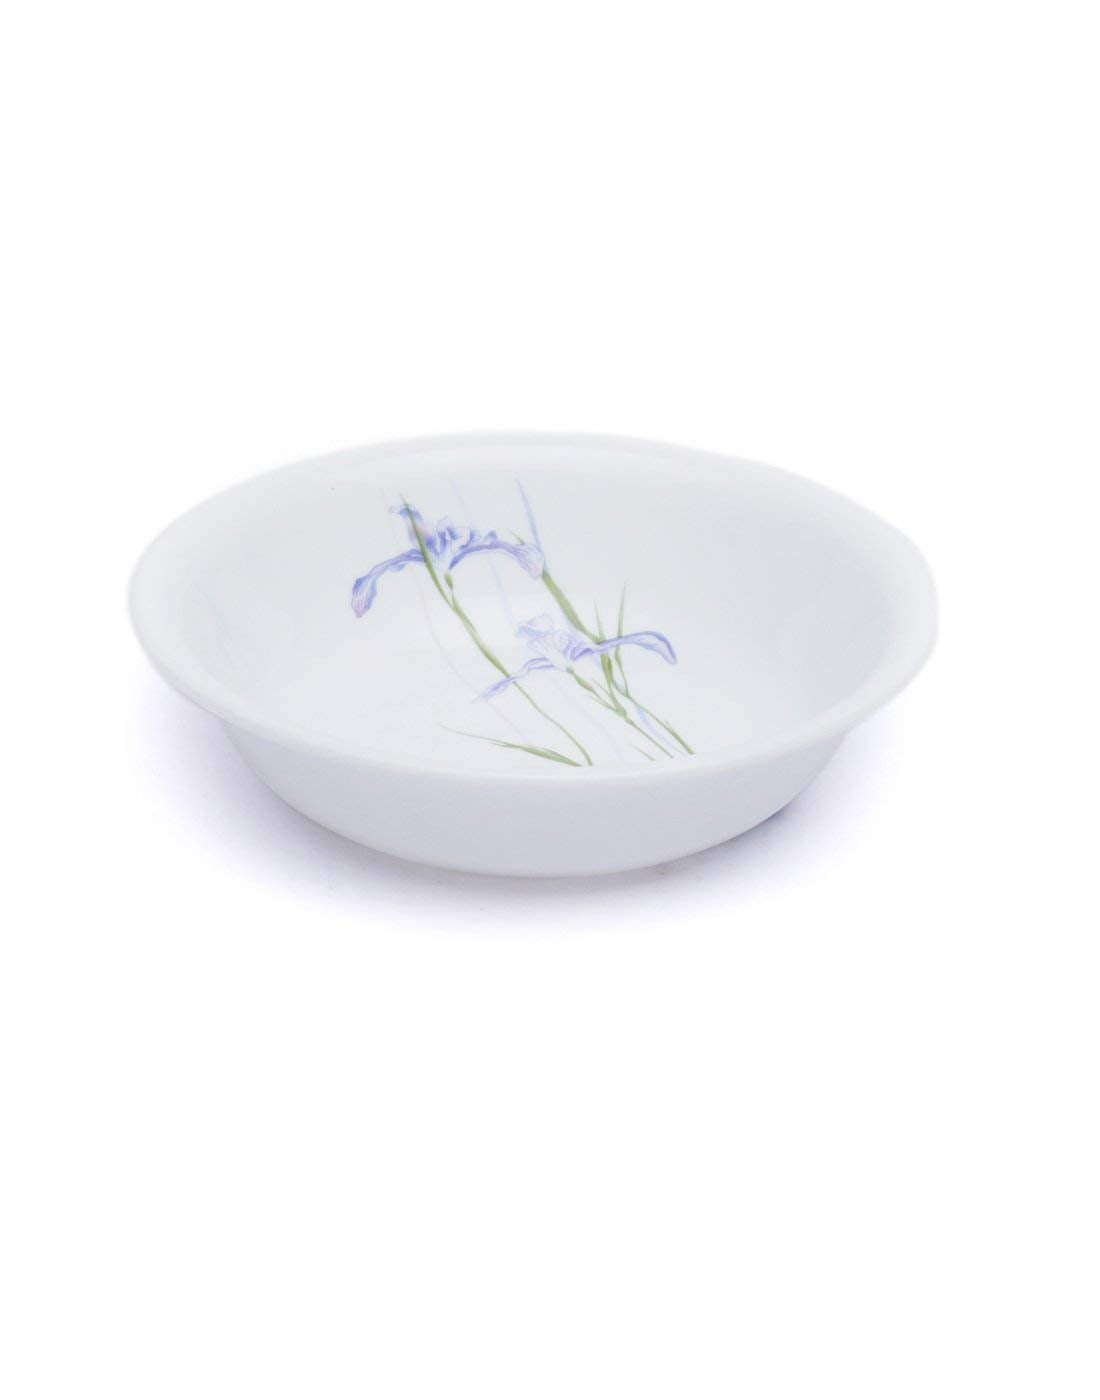 CORELLE SHADOW IRIS 1L SERVING BOWL